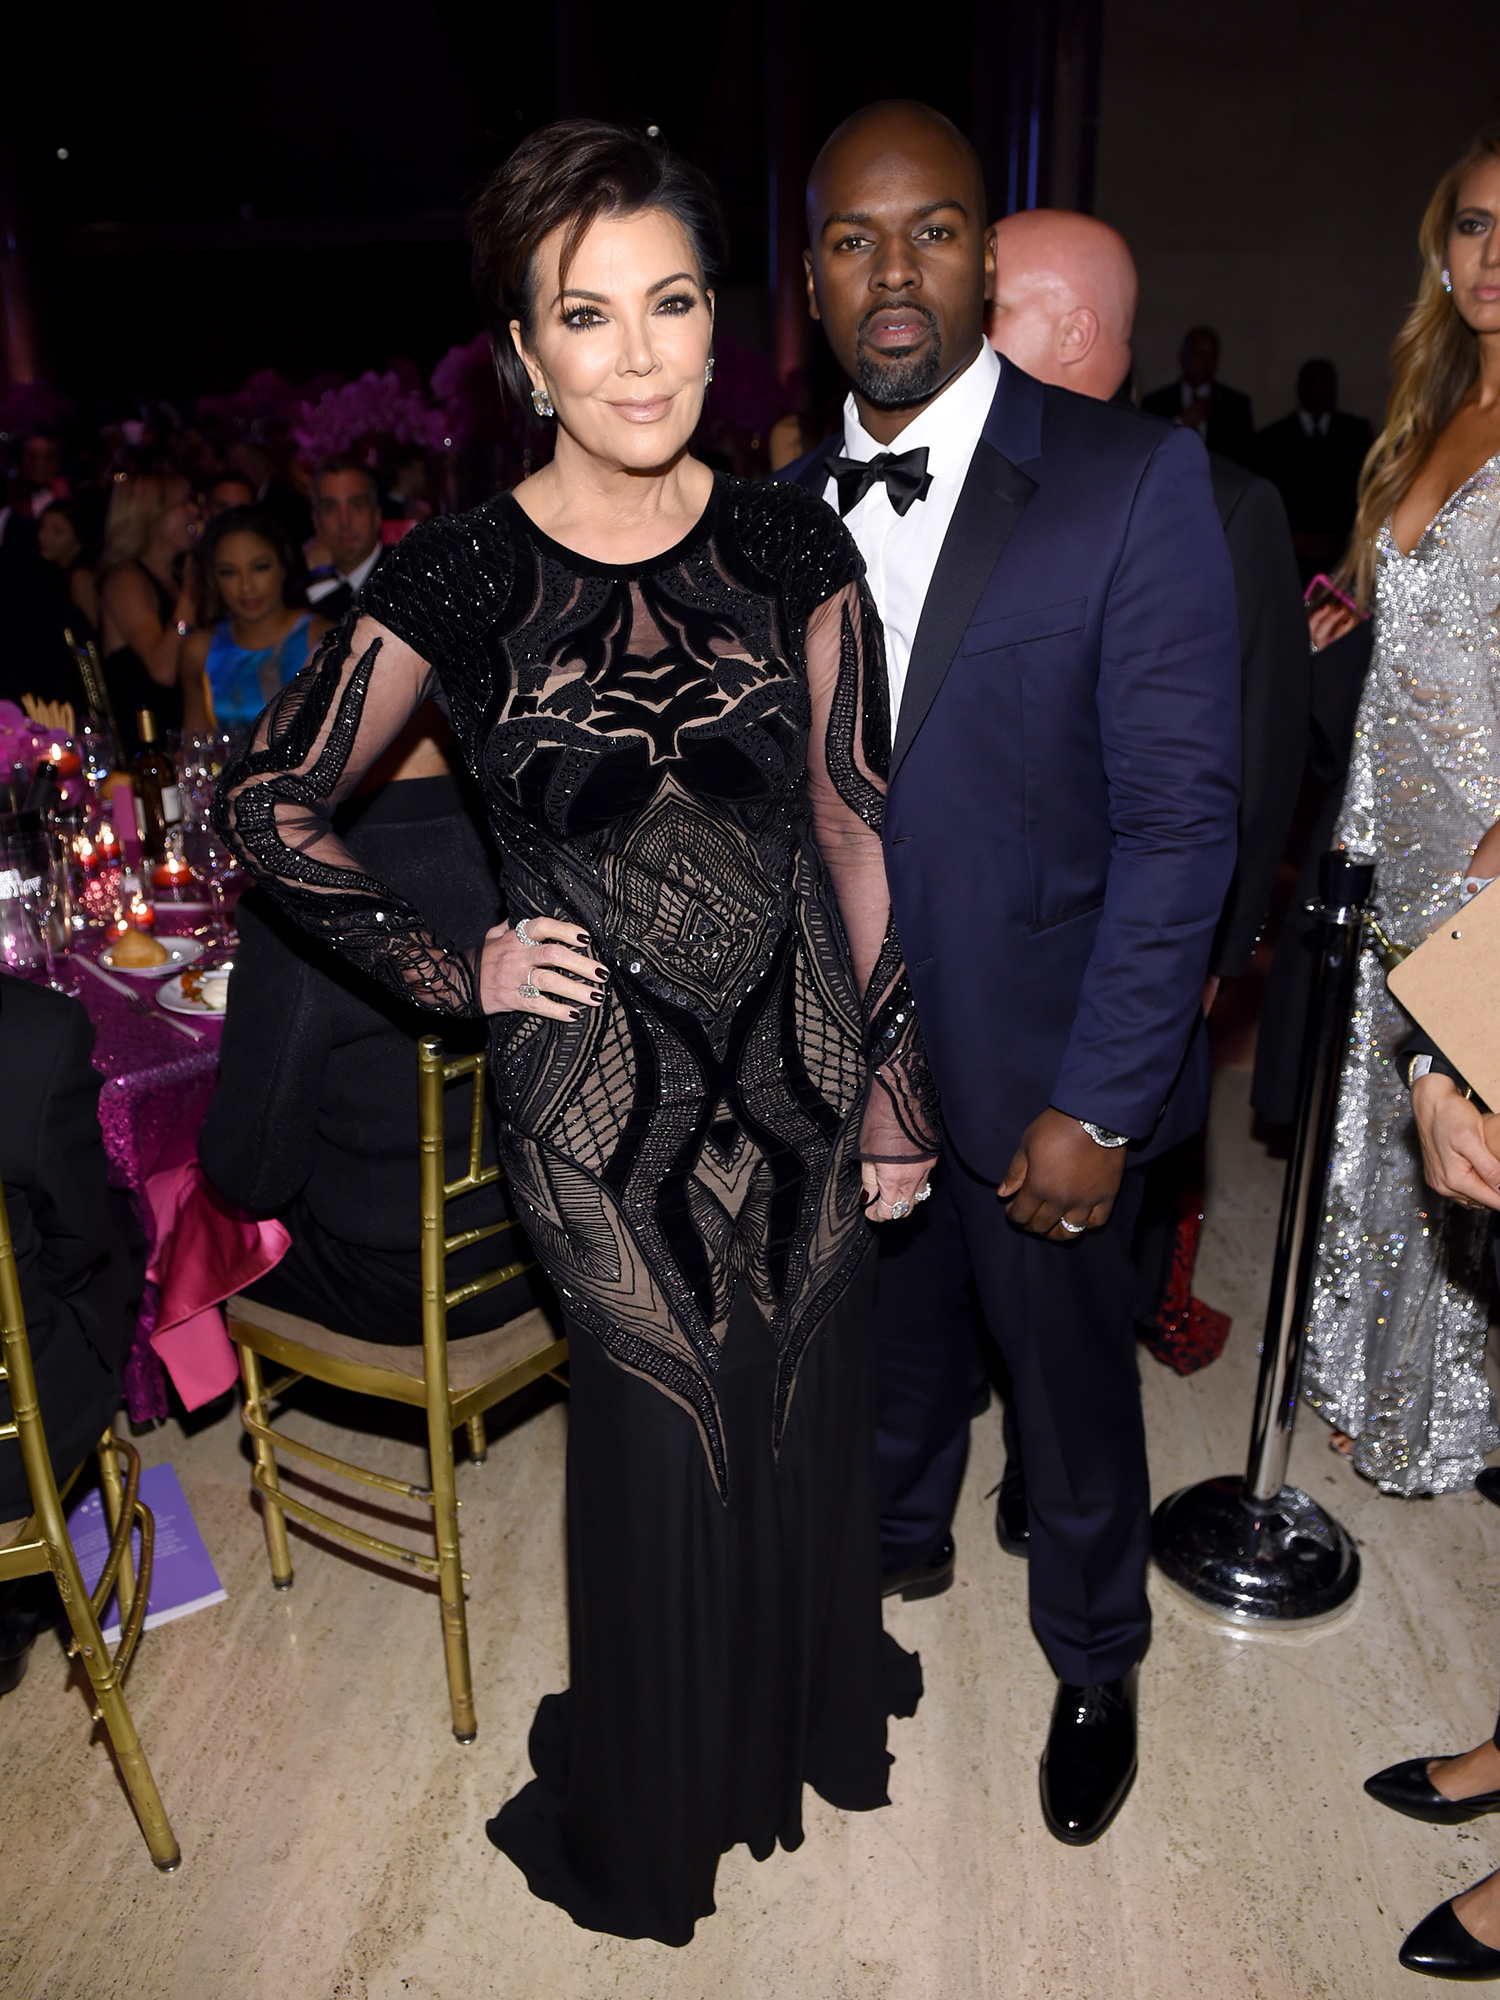 NEW YORK, NY - NOVEMBER 21: Kris Jenner and Corey Gamble attend the 2016 Angel Ball hosted by Gabrielle's Angel Foundation For Cancer Research on November 21, 2016 in New York City. (Photo by Dimitrios Kambouris/Getty Images for Gabrielle's Angel Foundation)